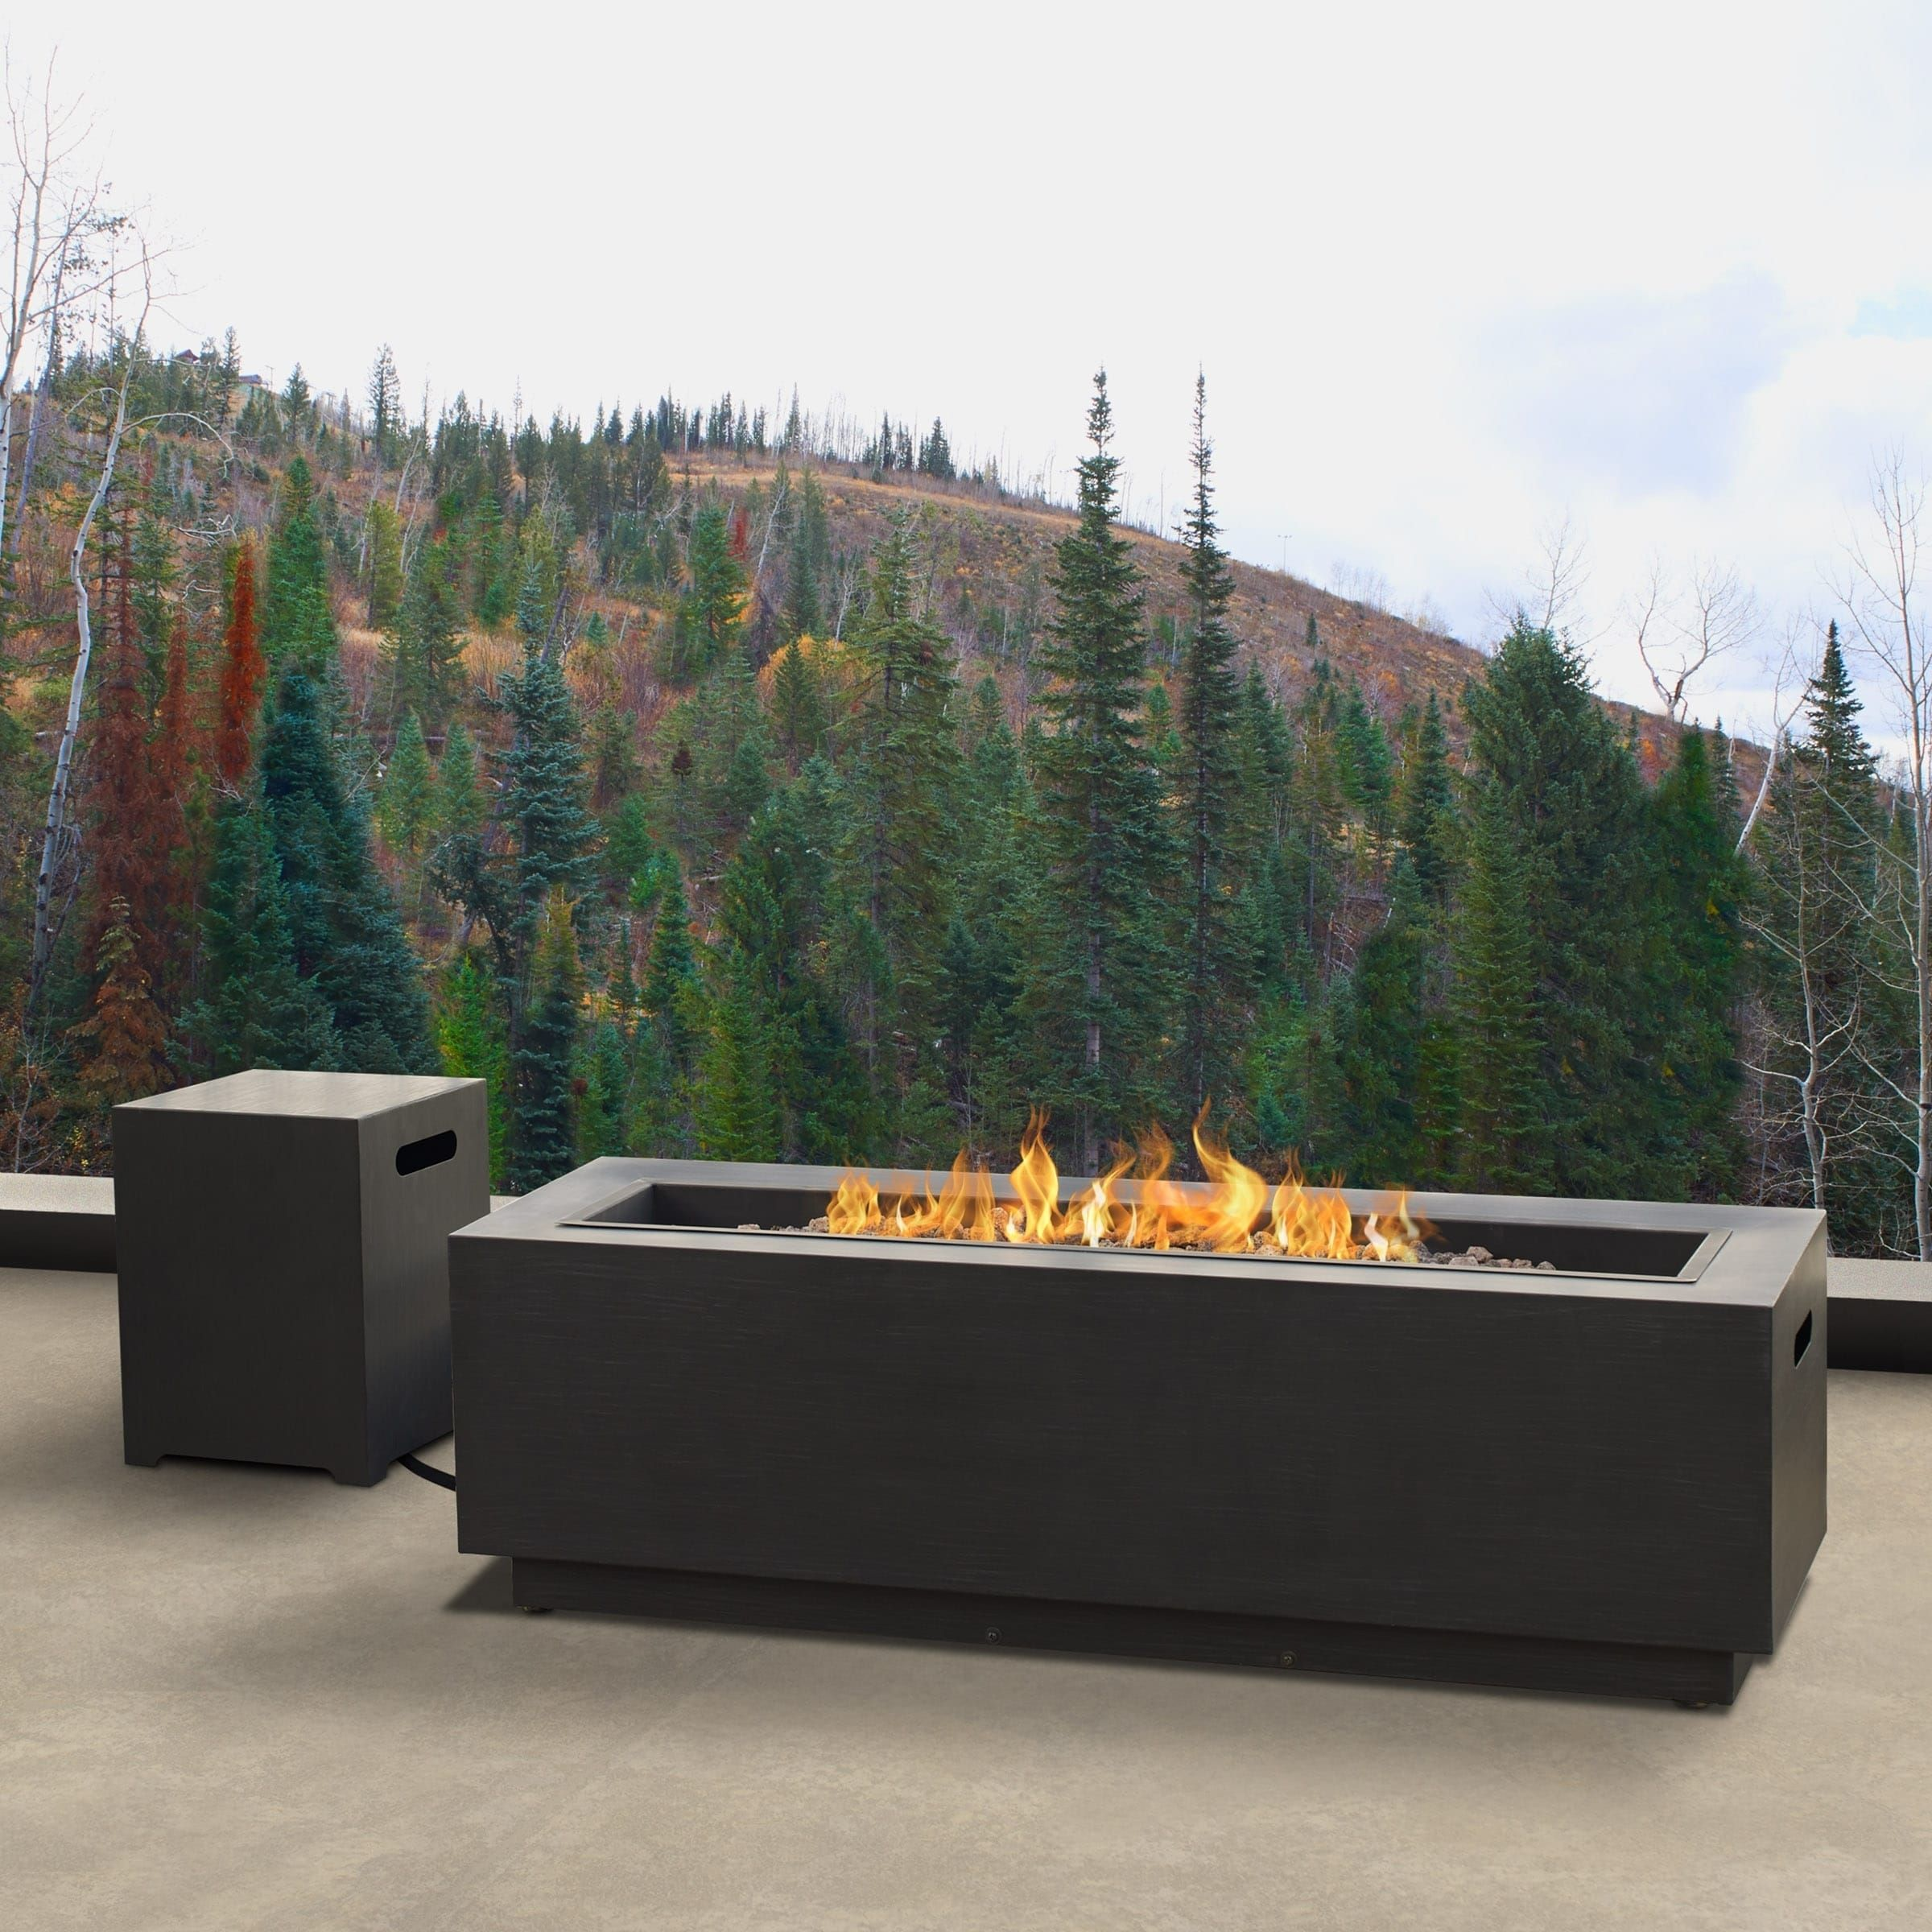 e706f2d419cd0d9feb38f343c7a019d2 - Better Homes And Gardens 48 Rectangle Fire Pit Gas